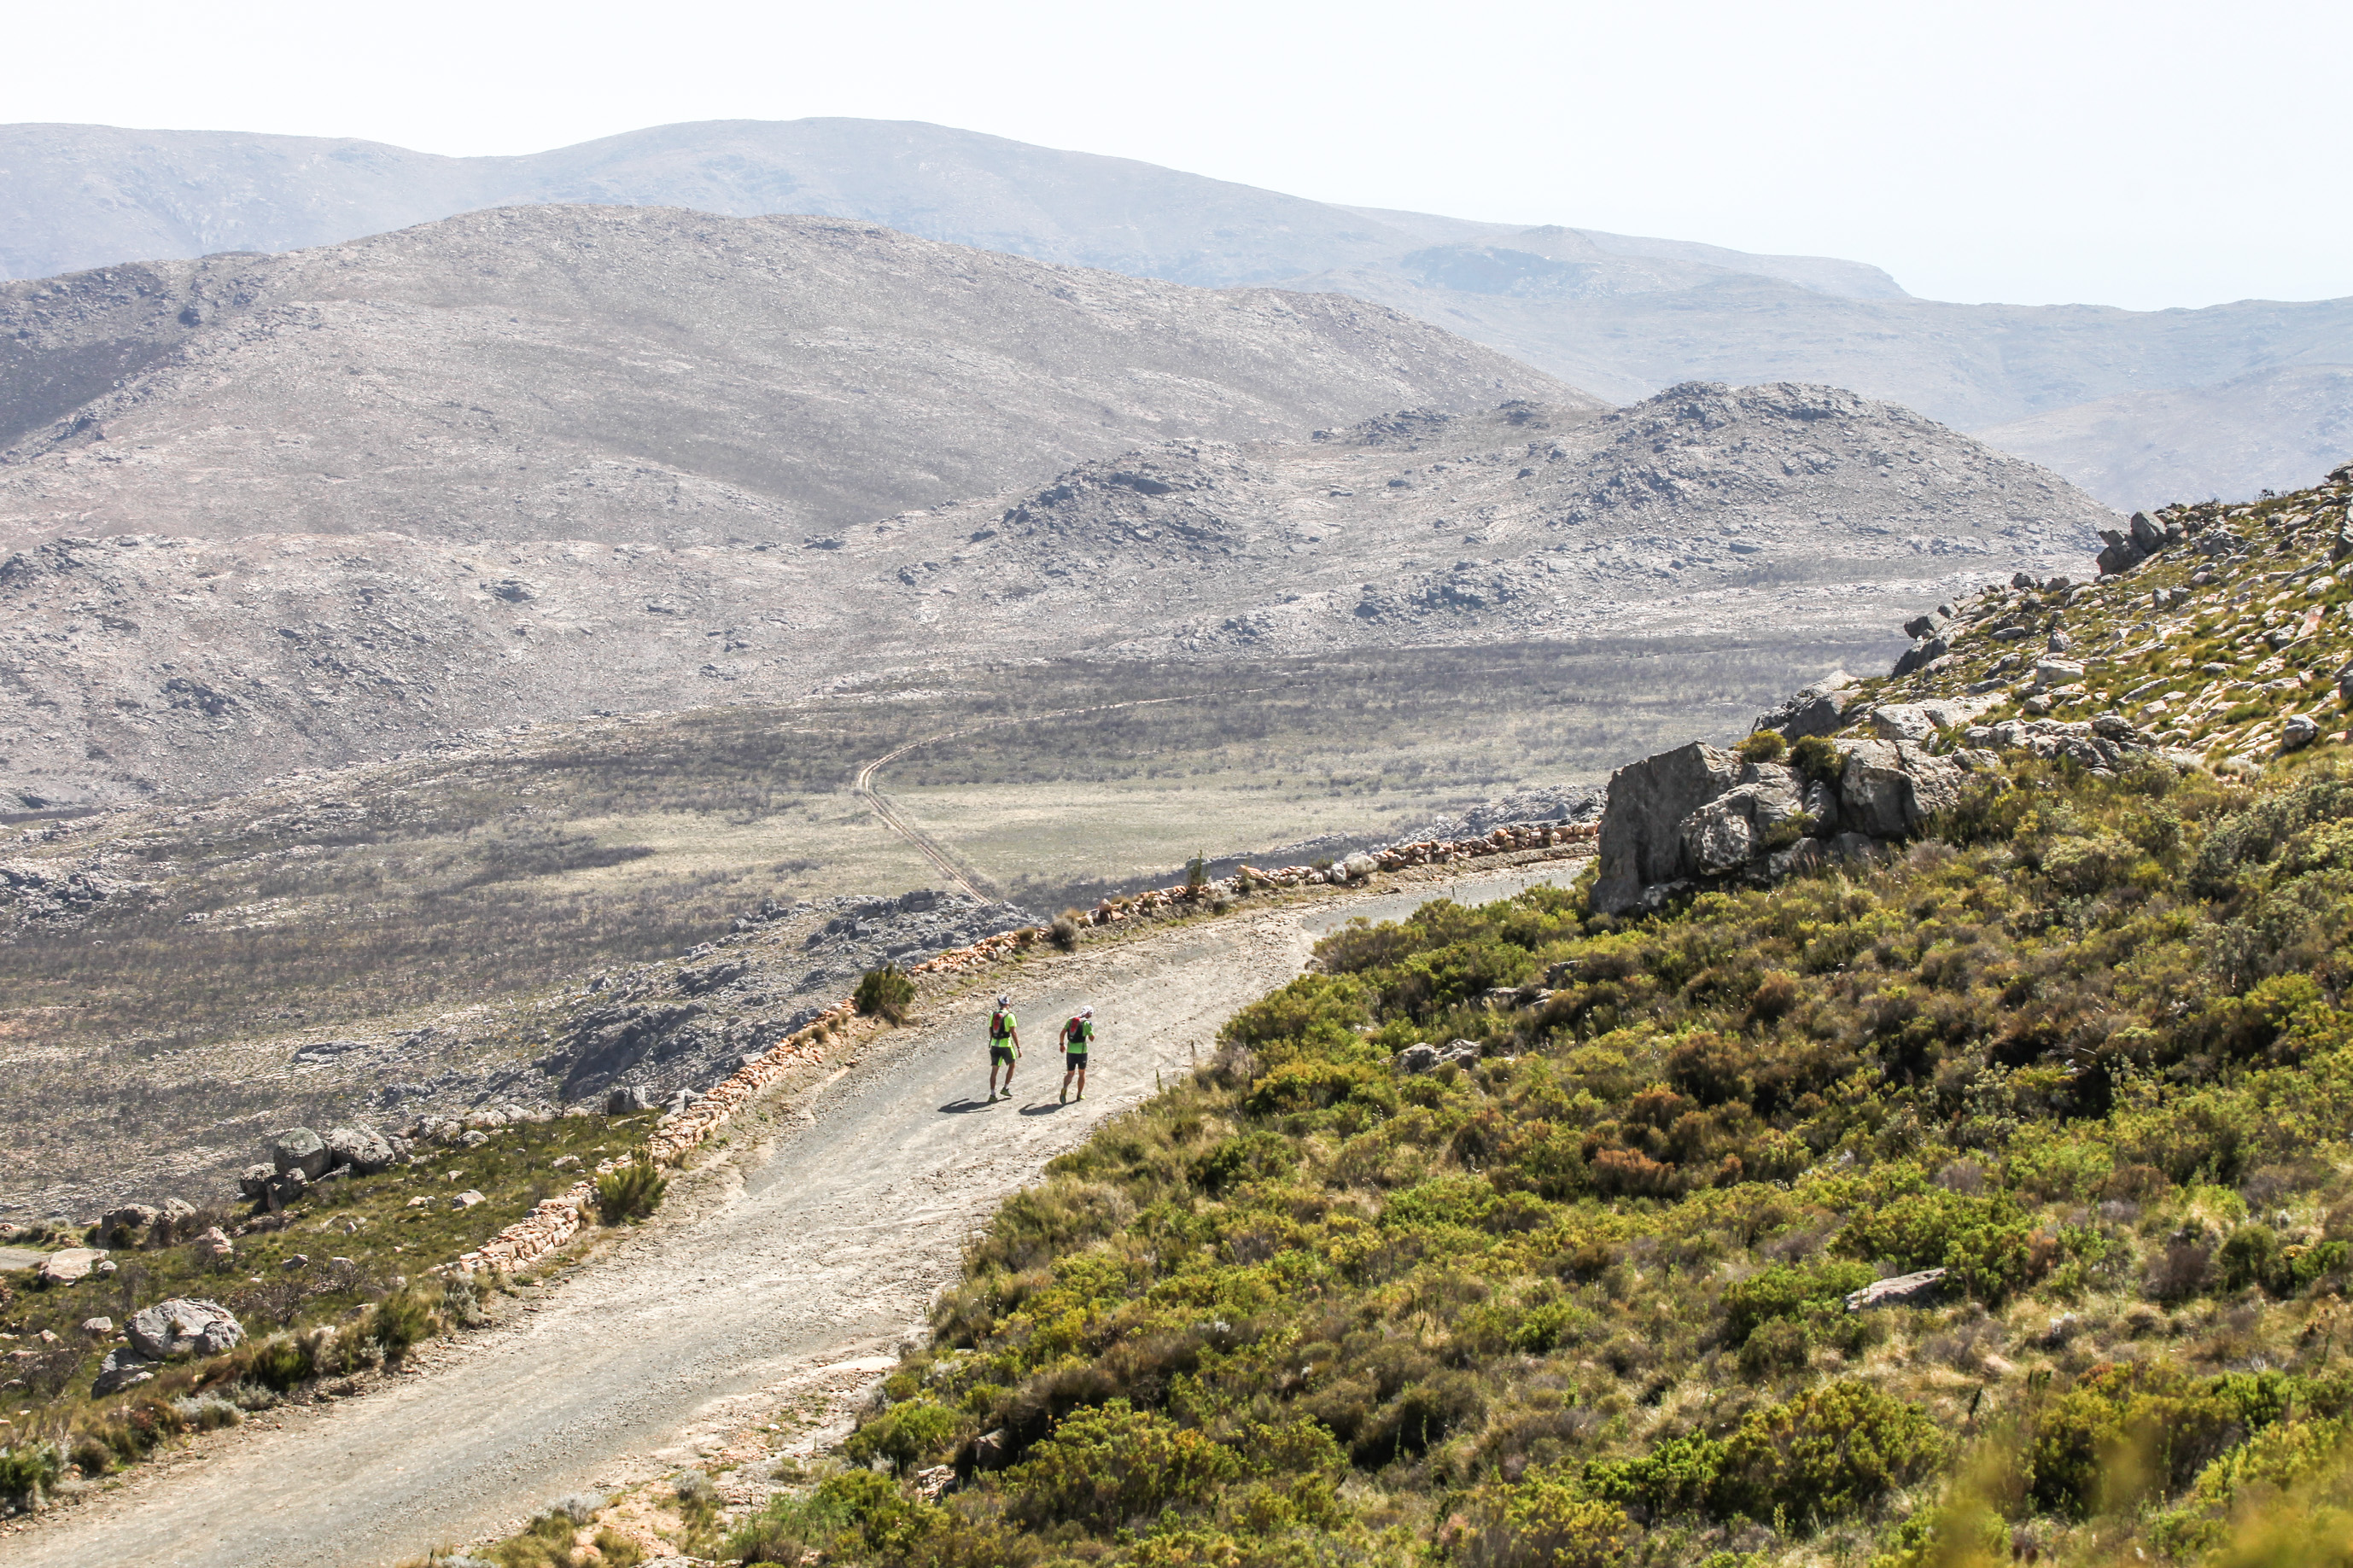 The final climb of the day was a brief section of the Northern side of the Swartberg Pass. Photo by Oakpics.com.